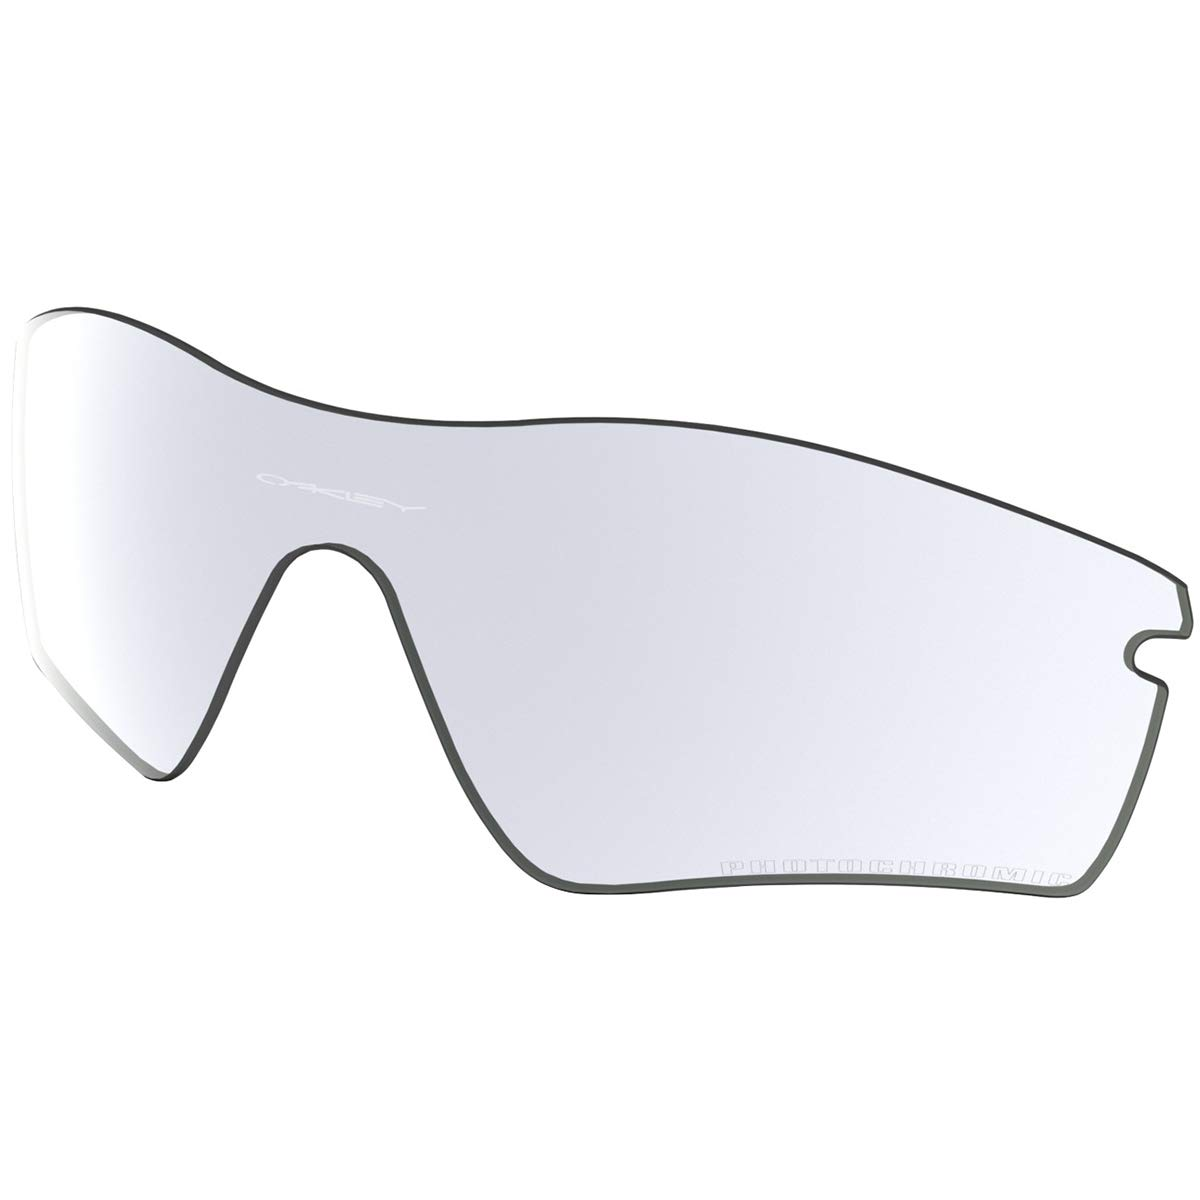 Oakley Radar Path Photochromic Replacement Lens Sunglass Accessories - Clear Black Iridium Photochromic Activated/One Size by Oakley